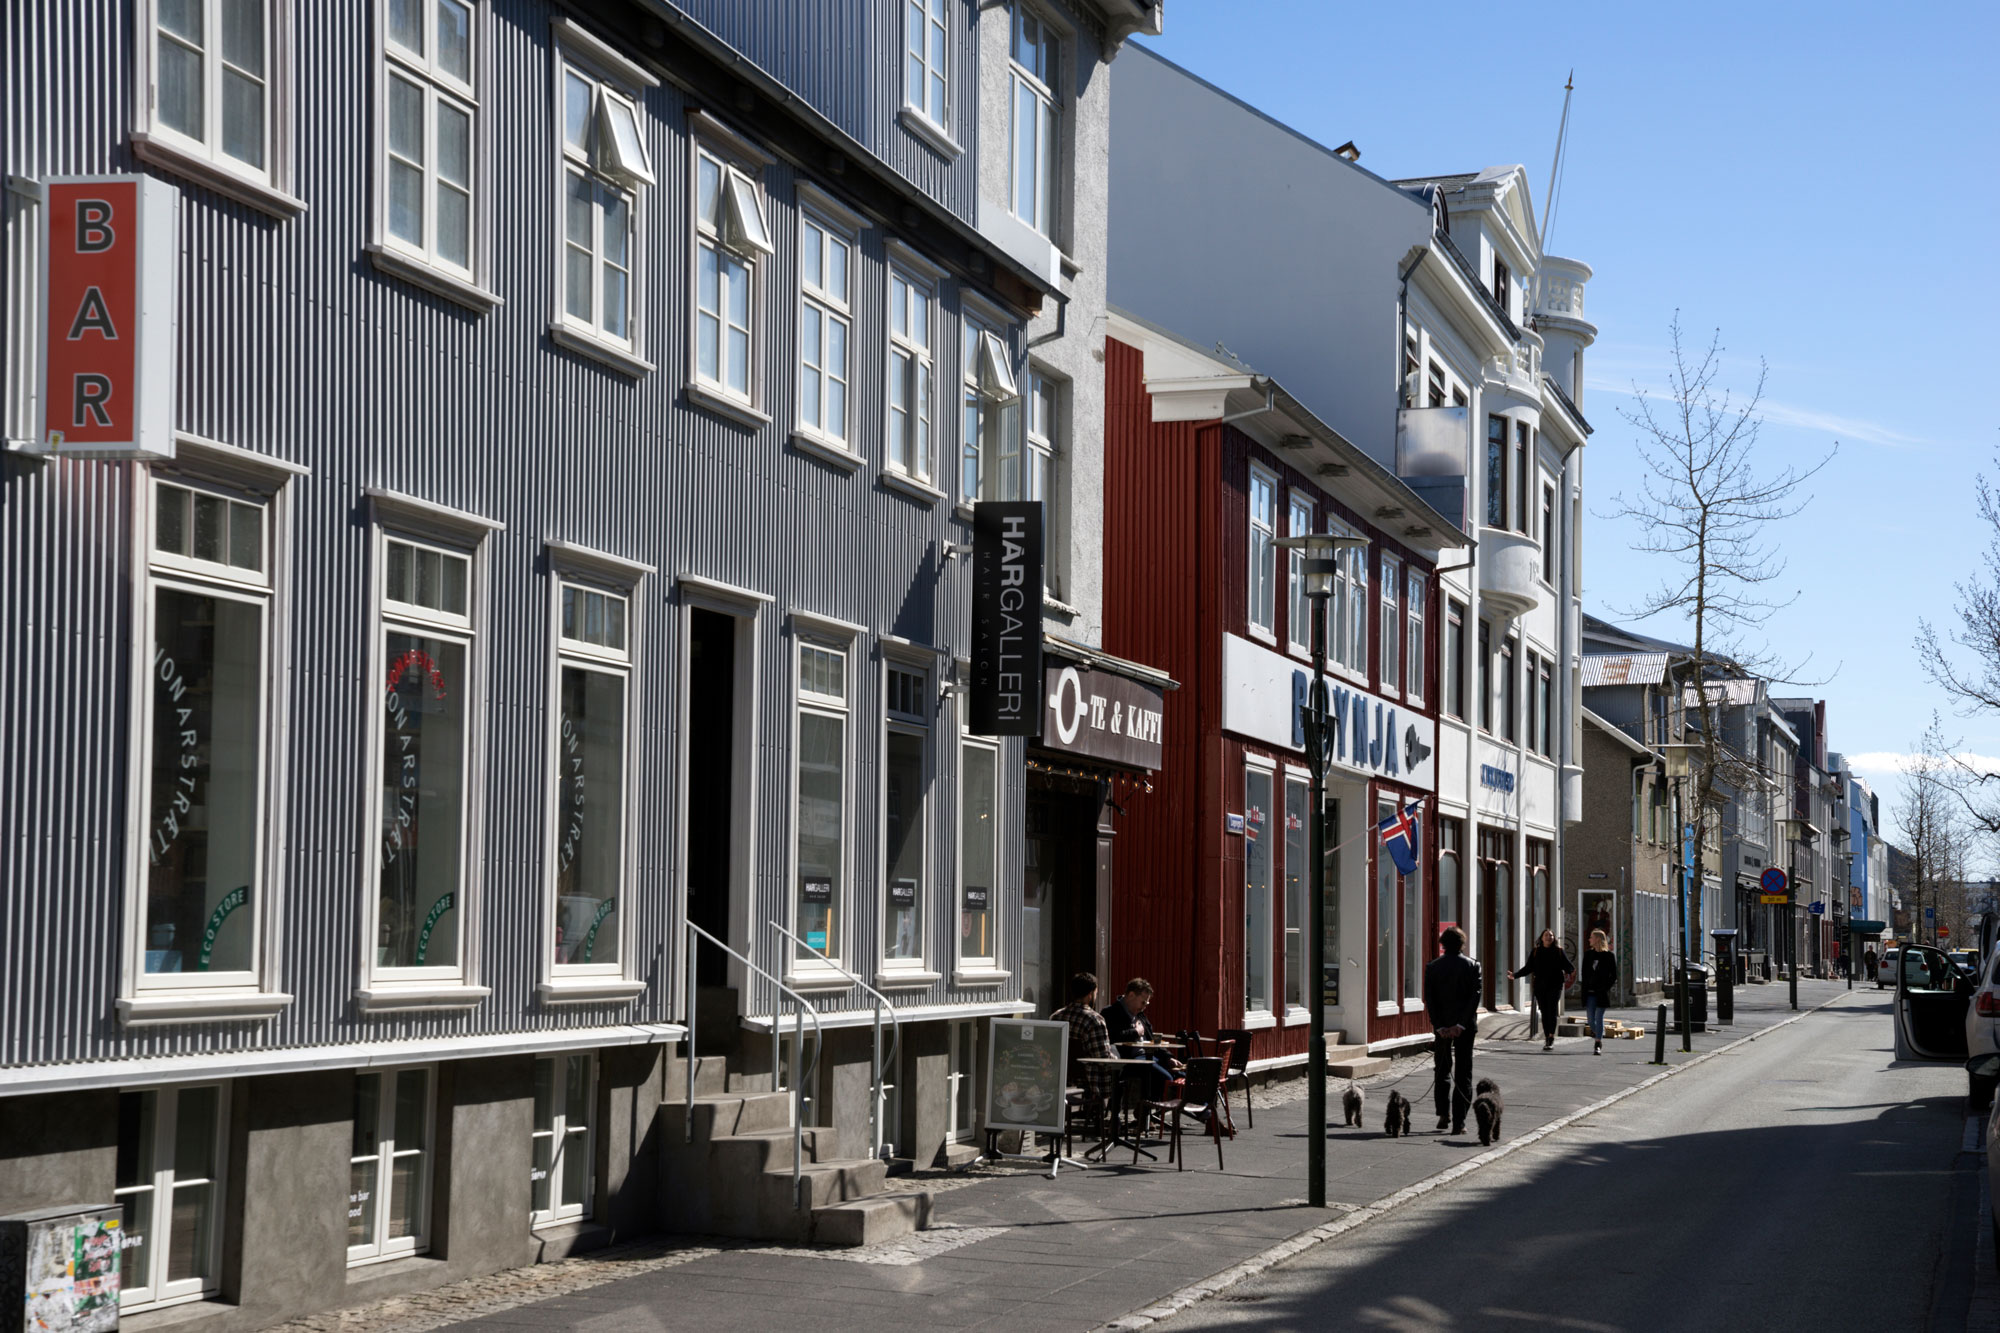 People walk down a street in downtown Reykjavik, Iceland, on April 30.